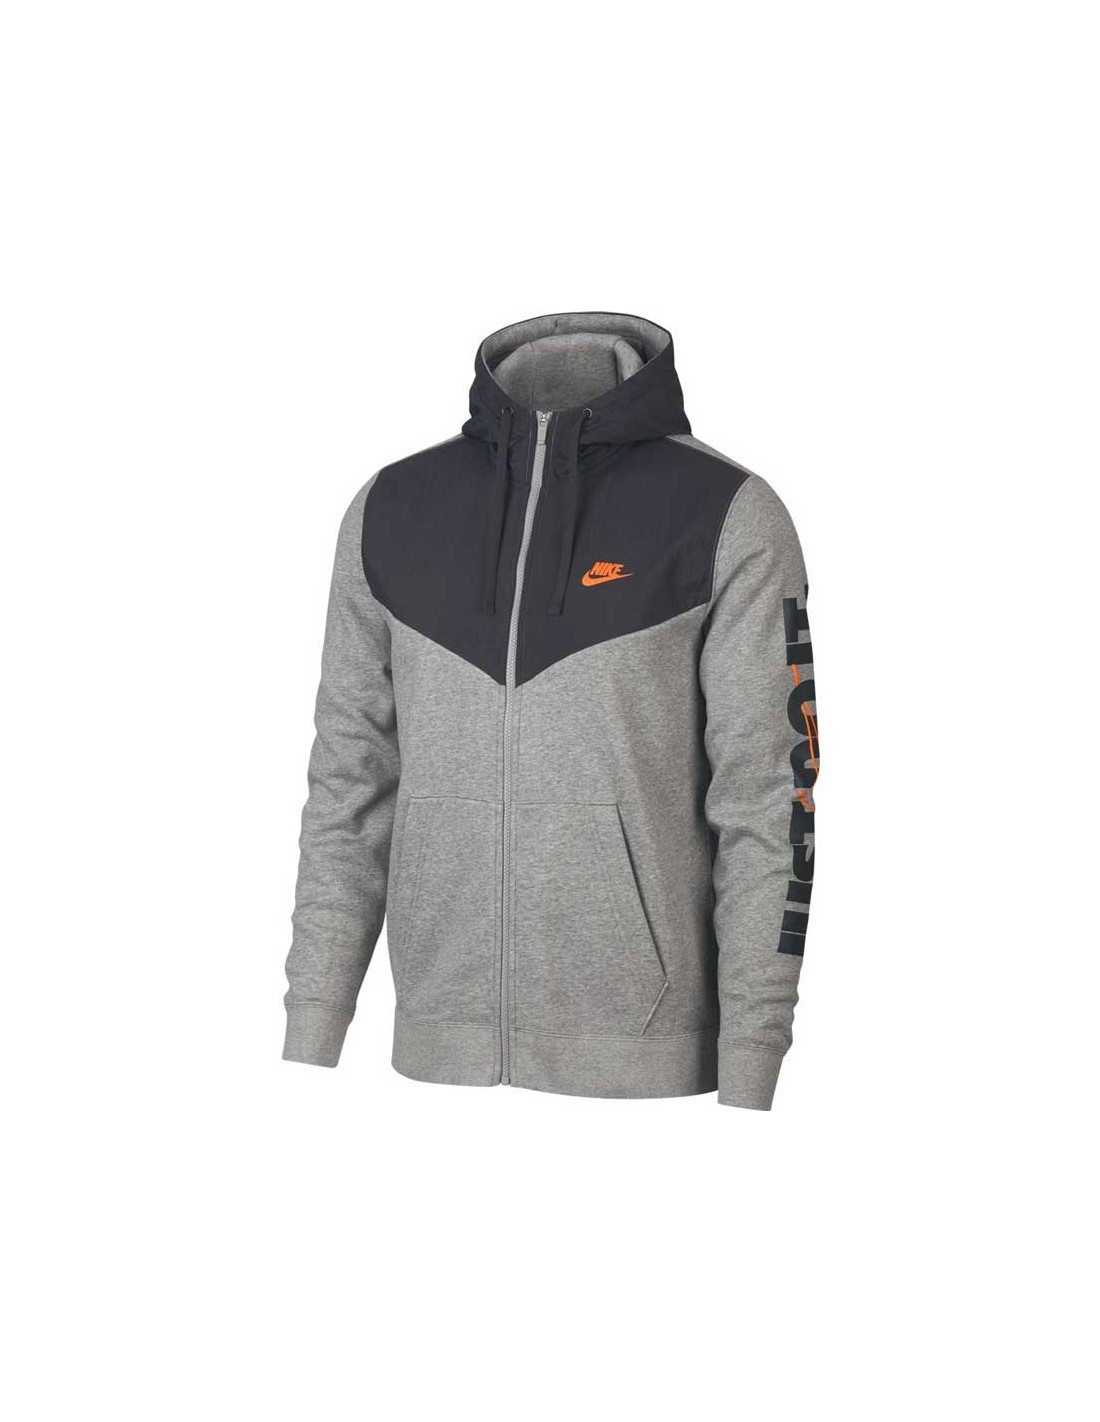 931900 Homme Full Jdi Gris Nike 063 Sportswear Zip Fleece Hoodie Men's Sweat vxZg0dwZ